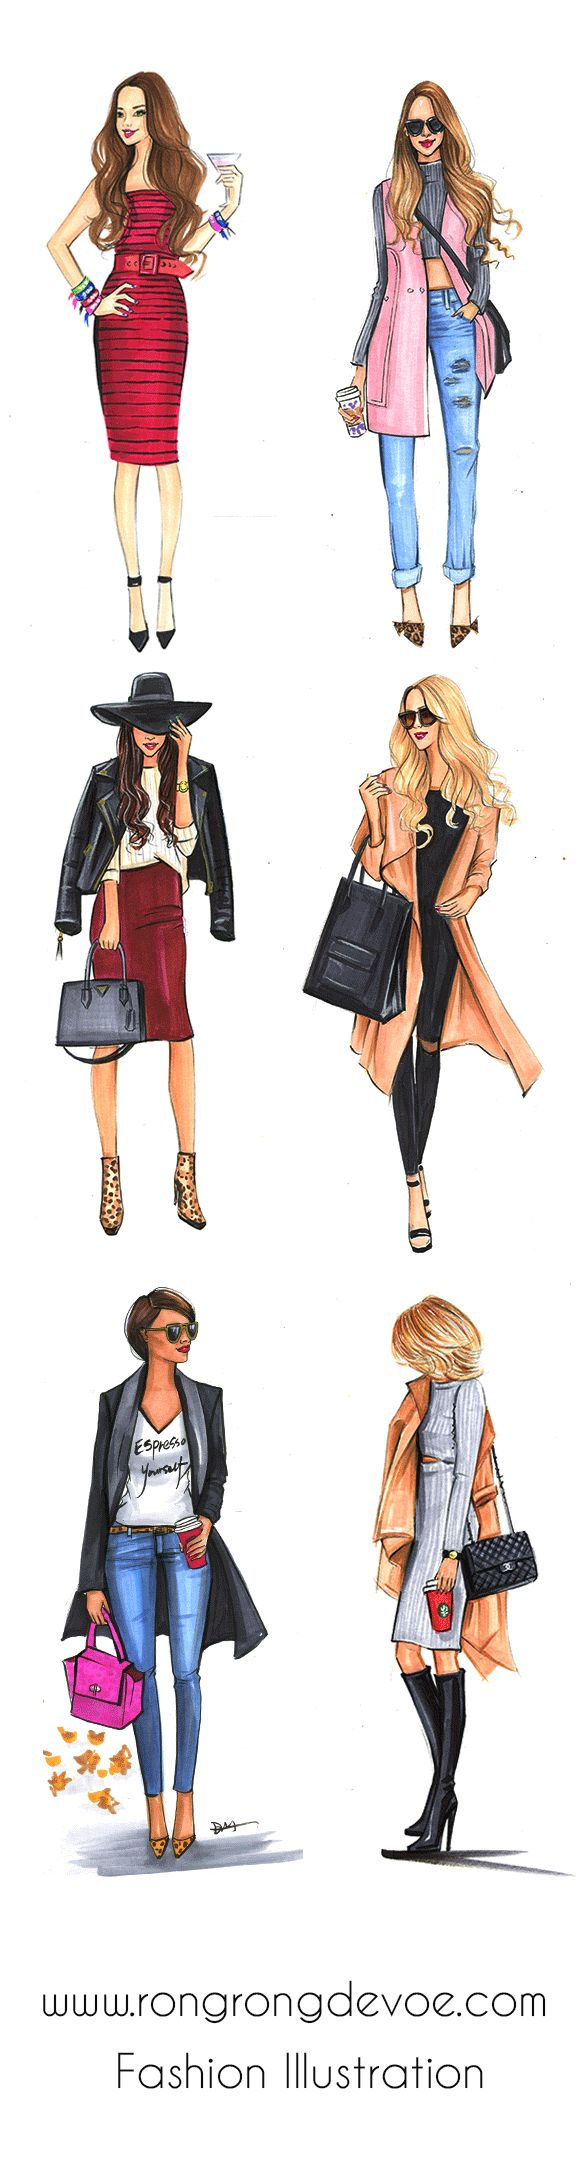 Fashion illustrations of street style fashionistas by Houston fashion…